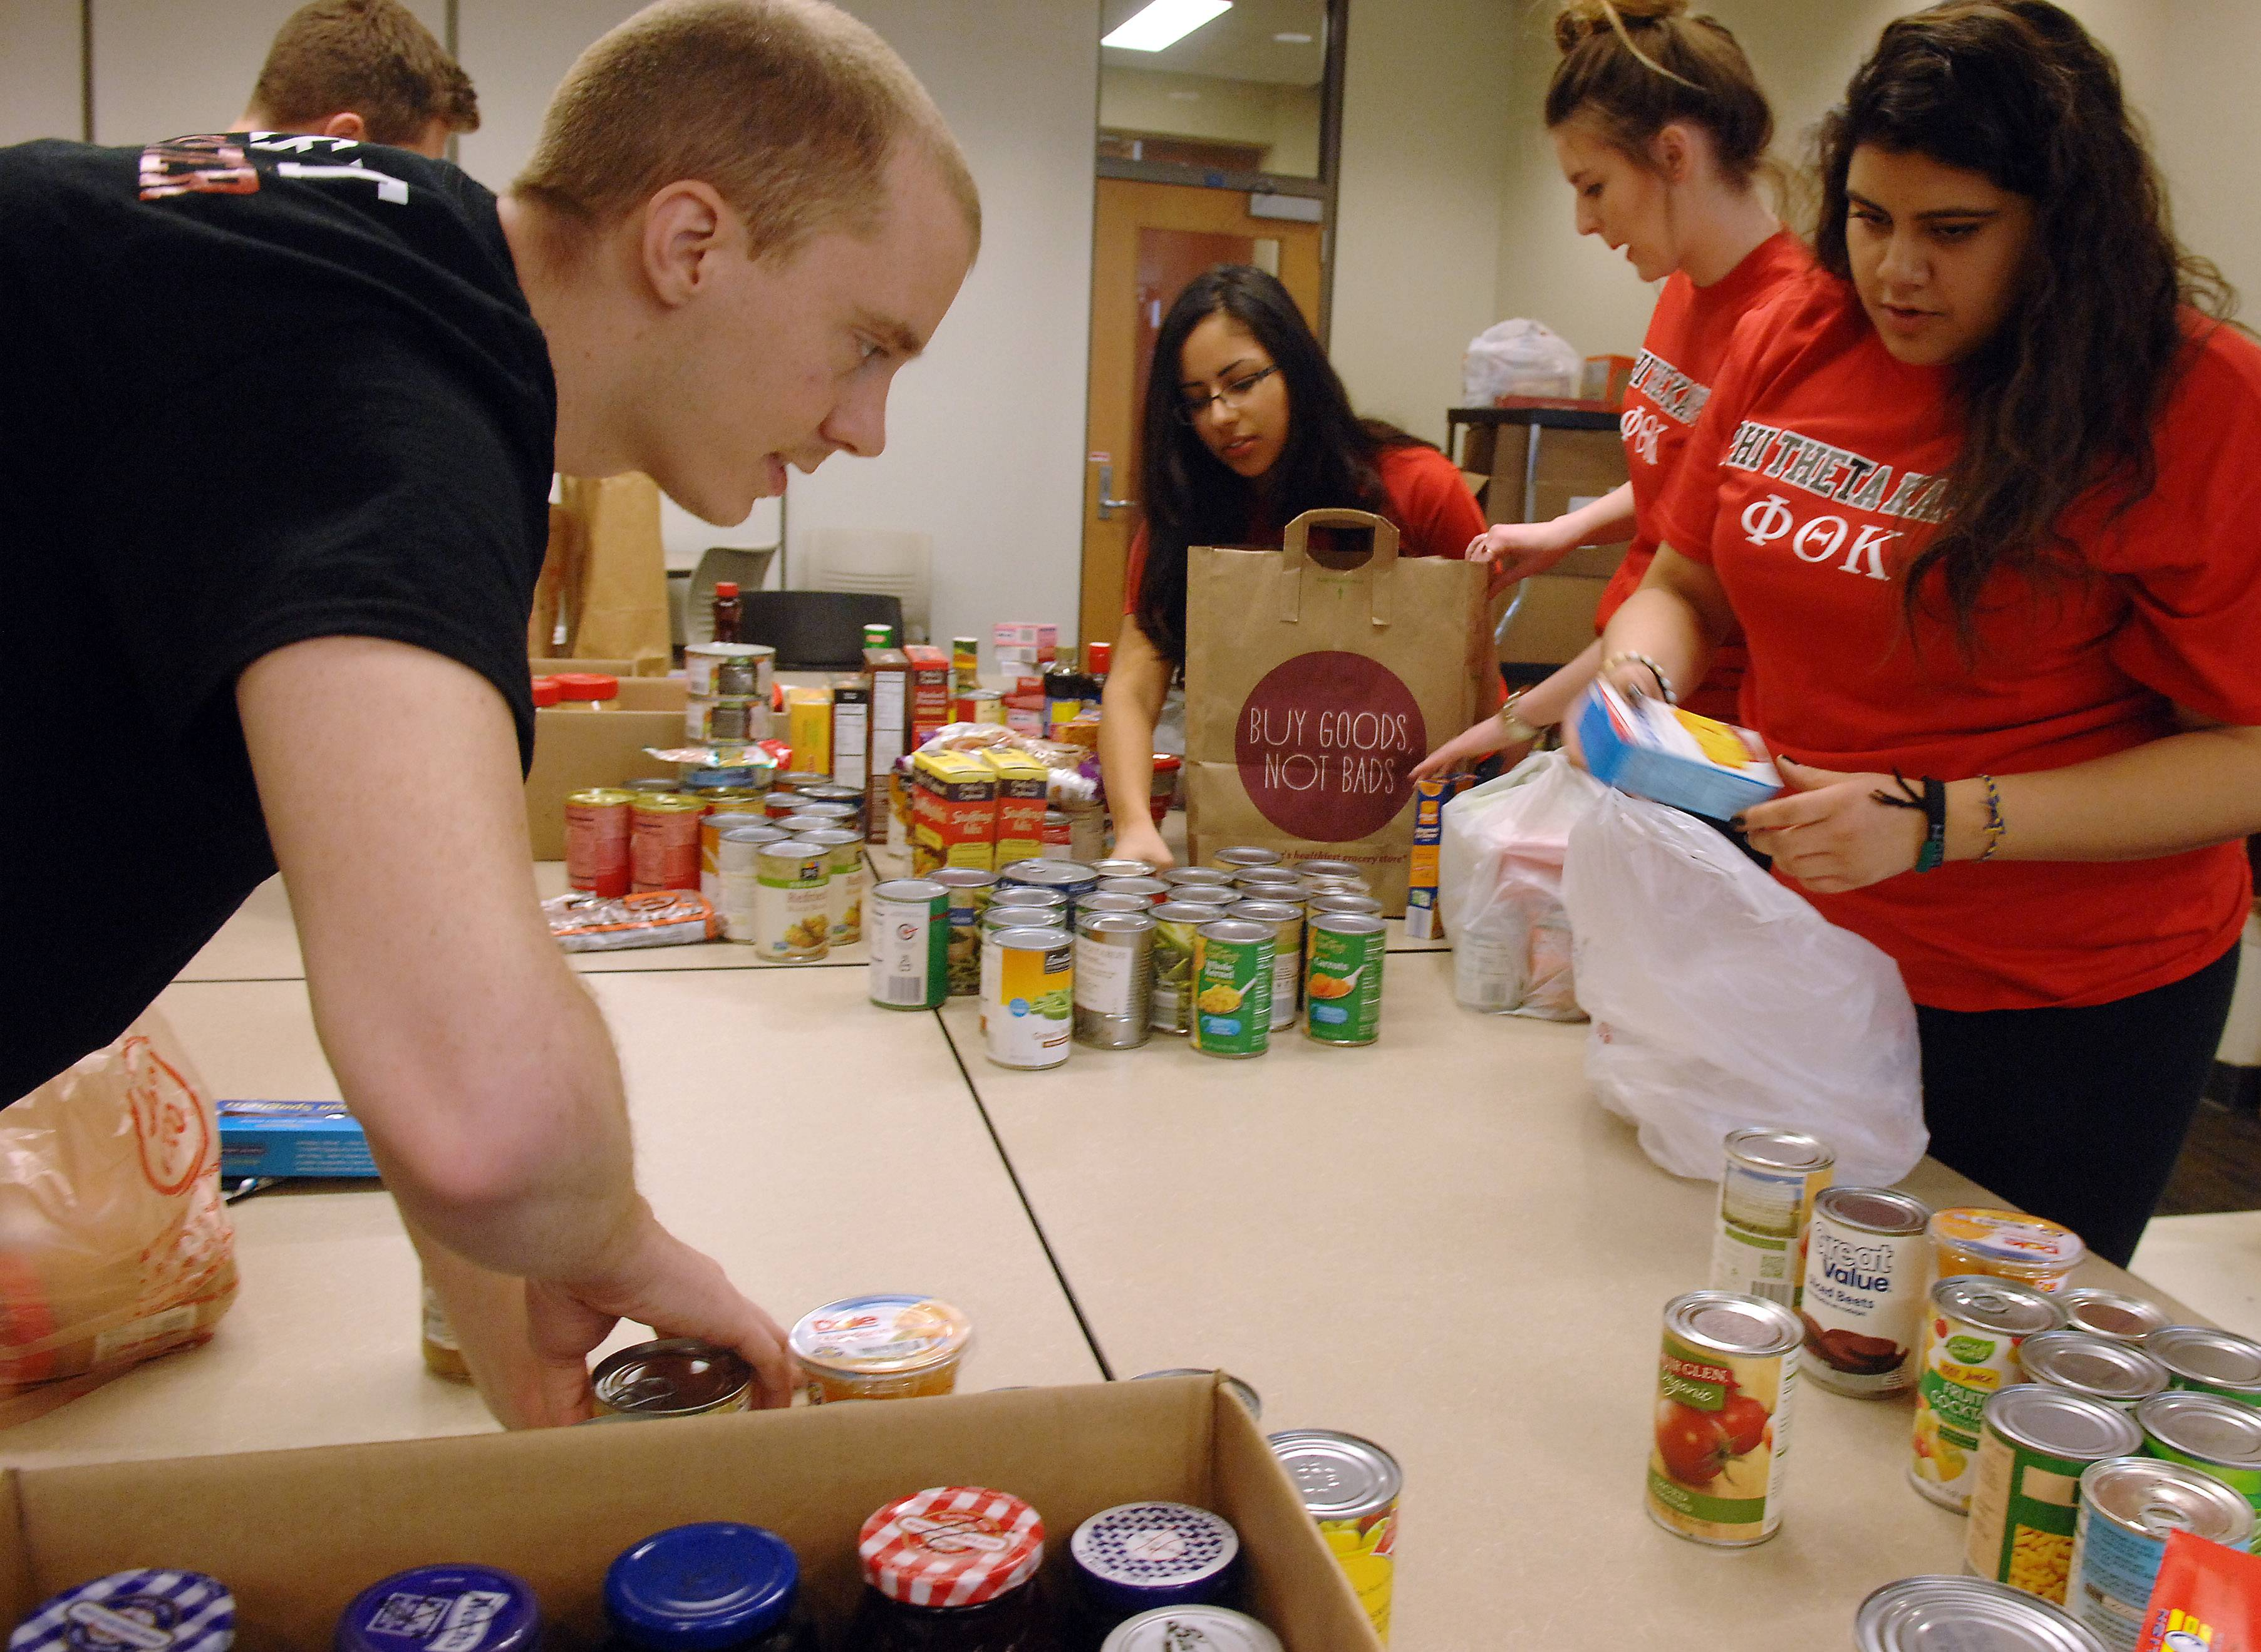 Members of the Elgin Community College branch of Phi Theta Kappa sort food as they help an on-campus pantry for students in need.